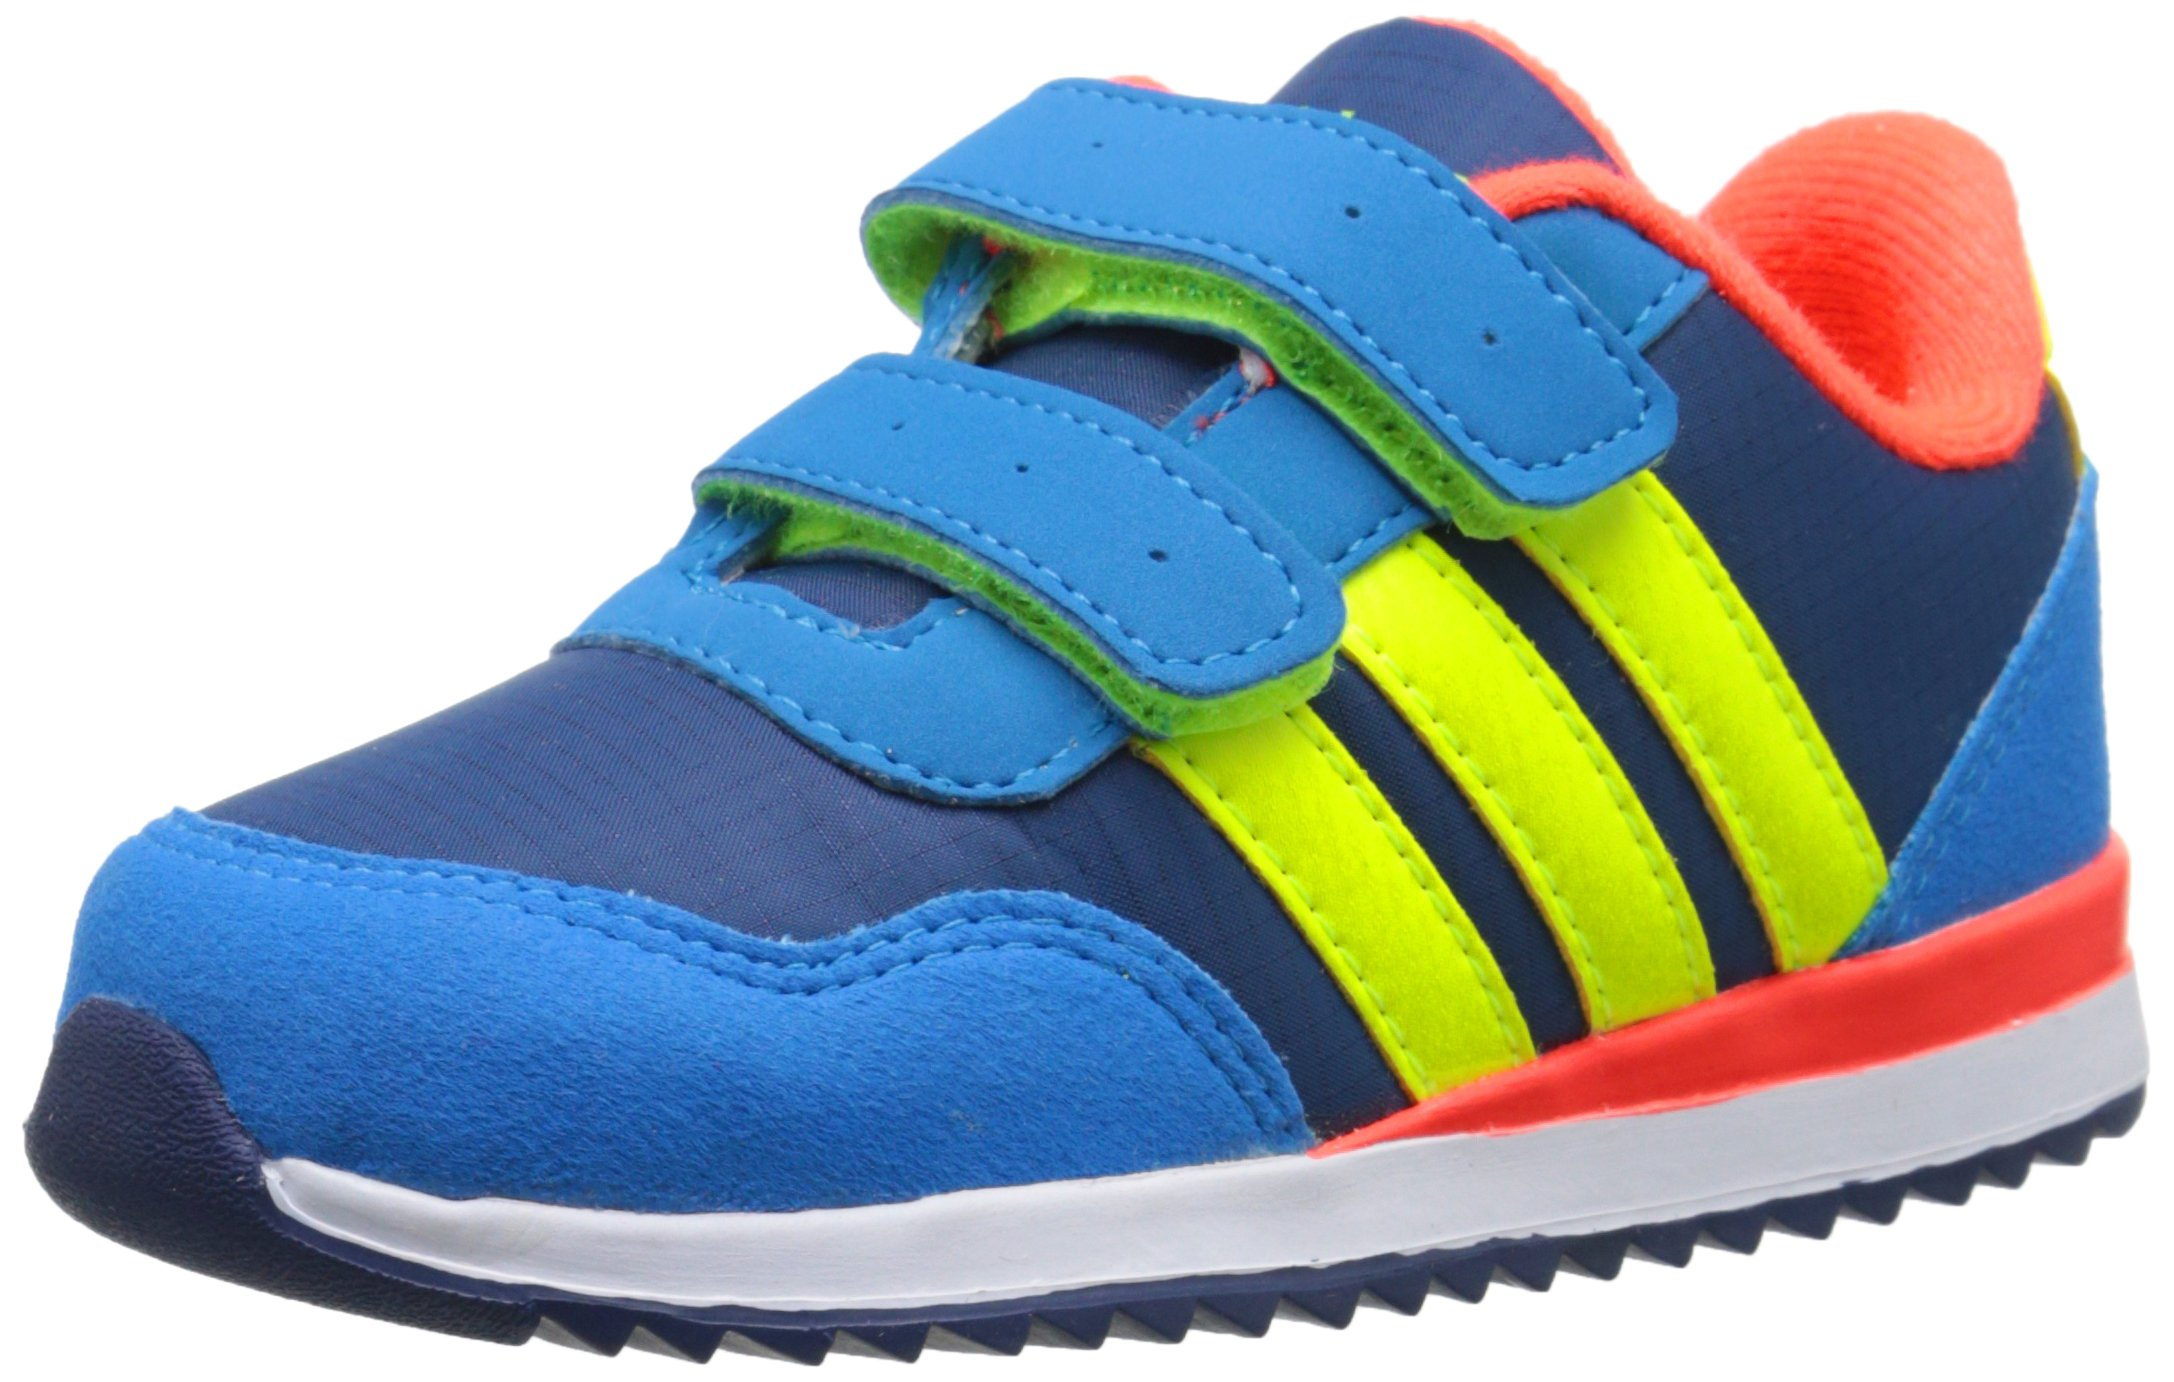 aed91ec8a17 ... uk galleon adidas neo v jog cmf inf runner sneaker infant toddler blue  solar yellow red